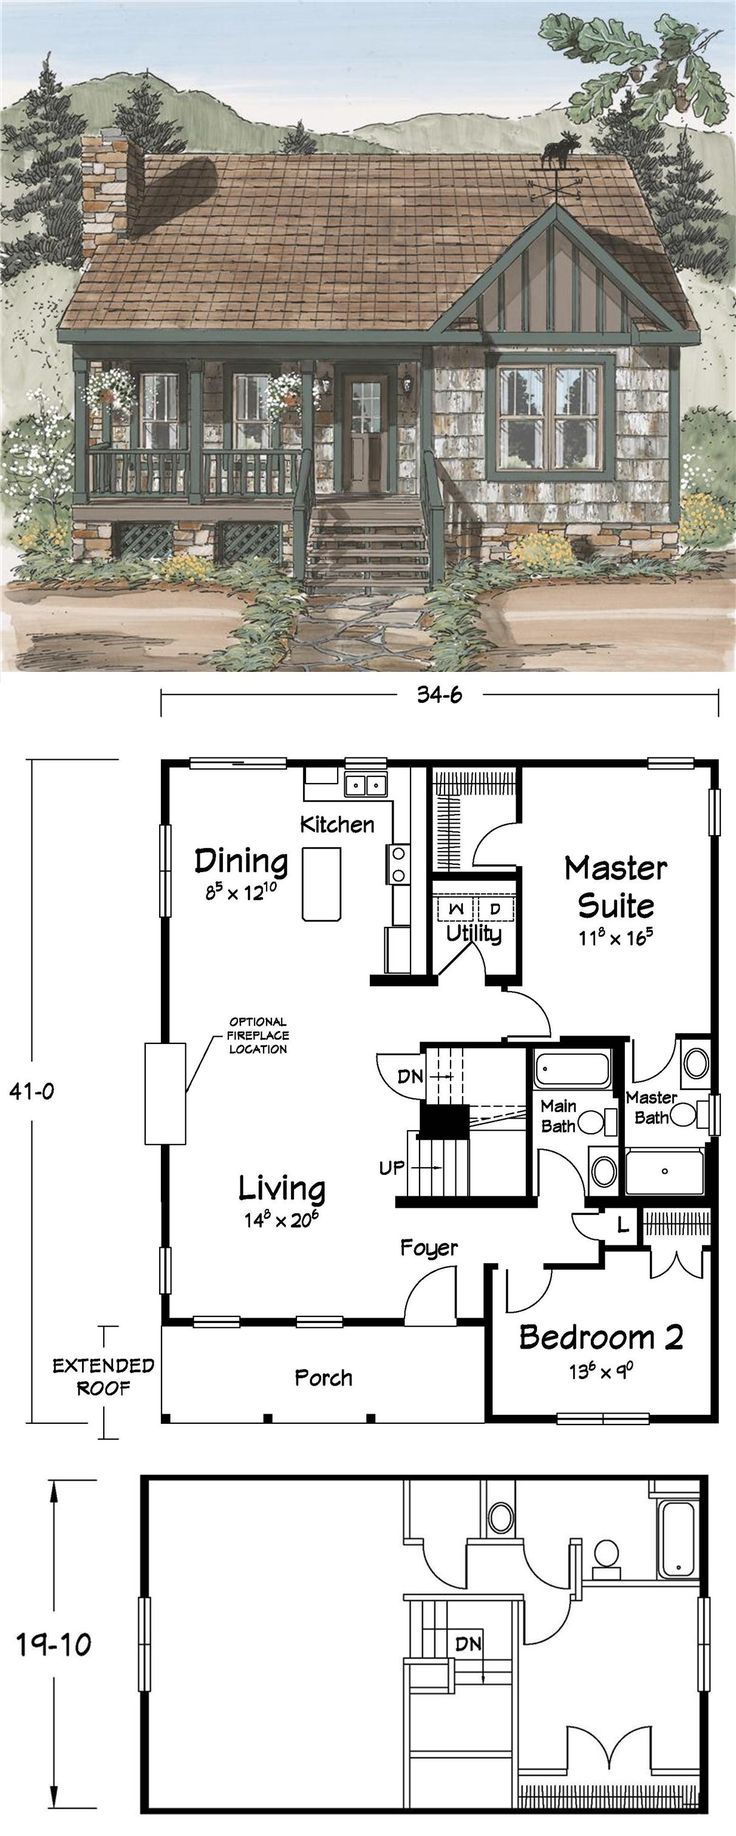 Cute floor plans tiny homes pinterest cabin small for Small home floor plans